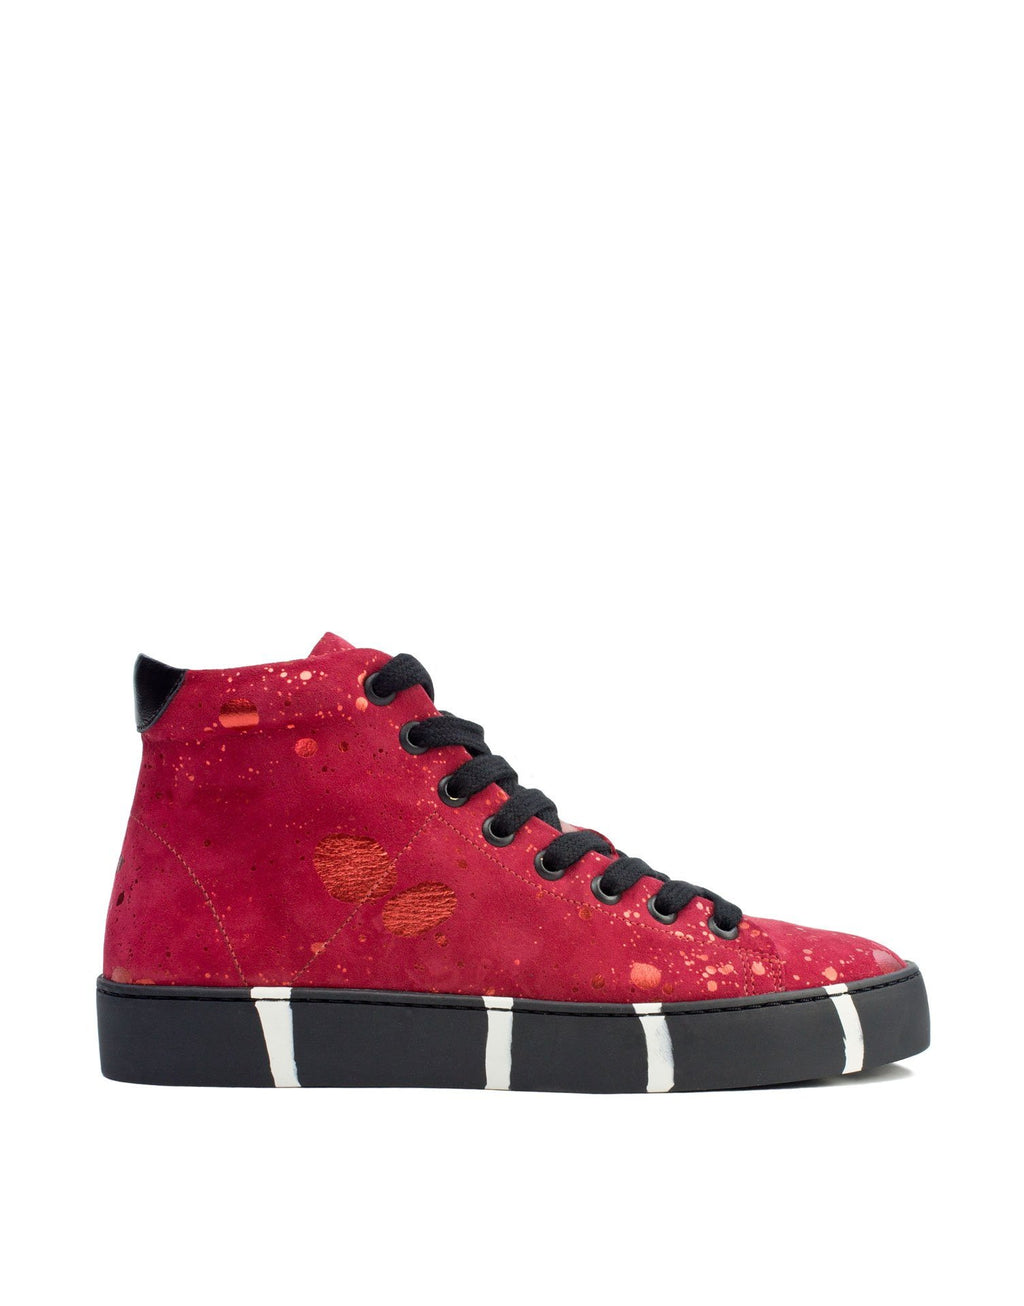 vibrant red high top designer sneaker art to wear by Georgina Goodman